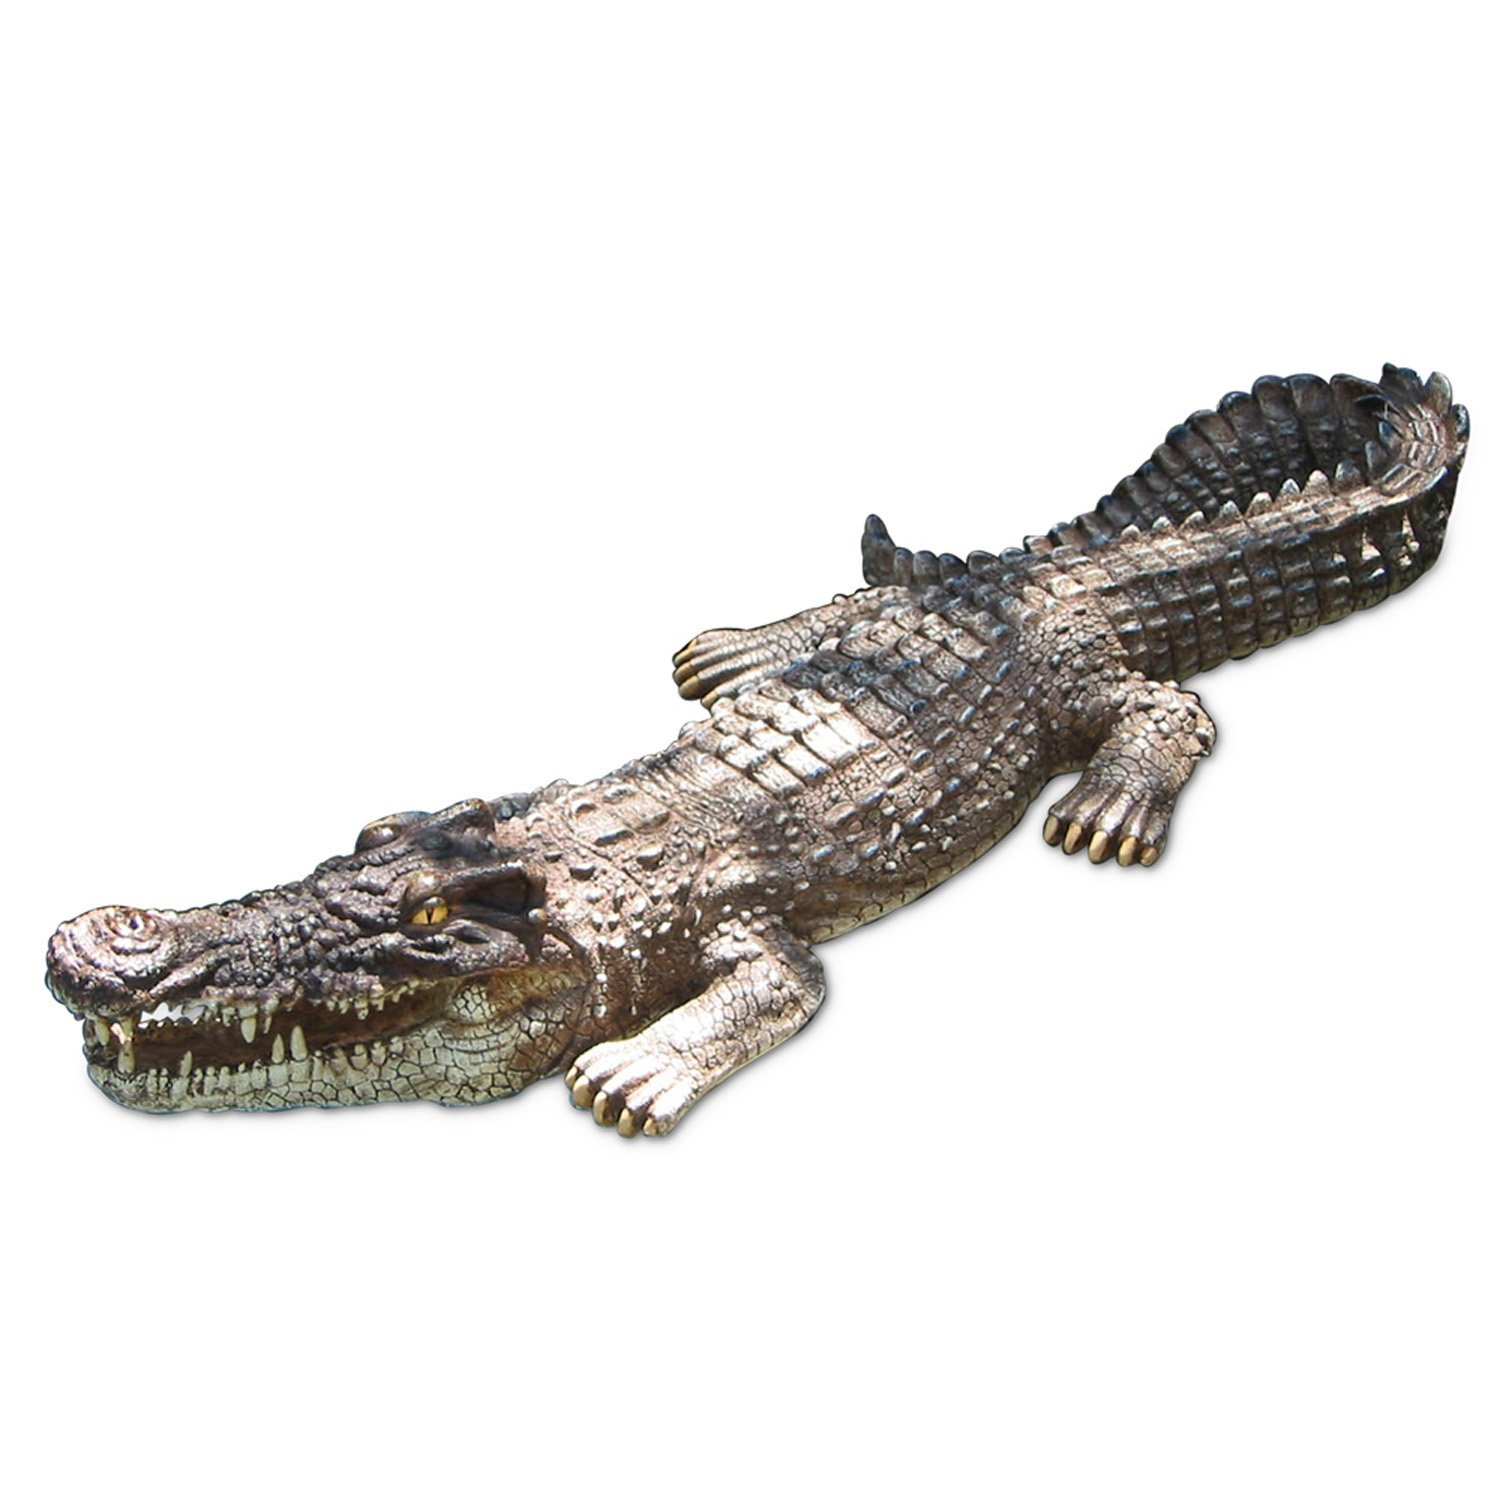 Poolmaster 30-Inch Floating Crocodile Decoy for Pool, Pond, Garden and Patio